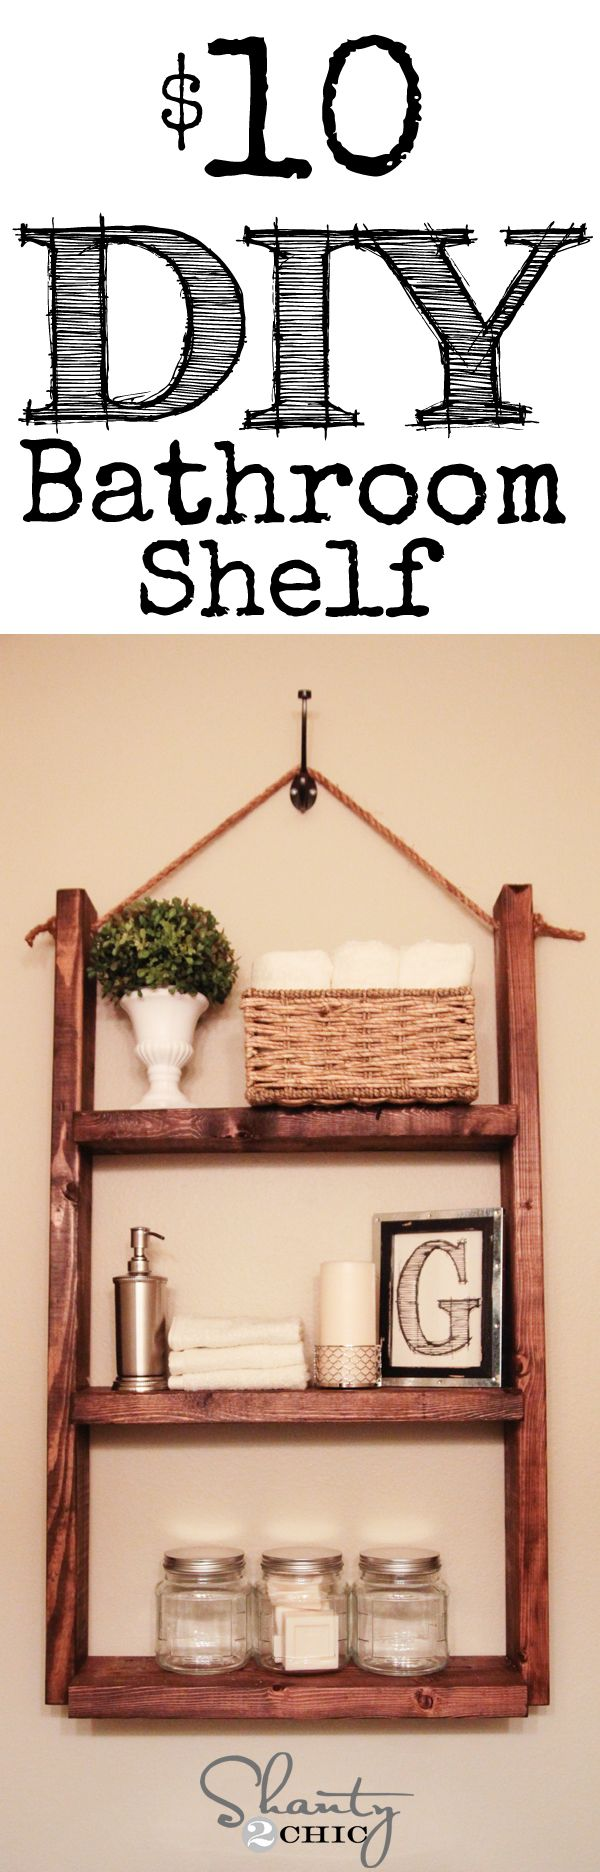 DIY: Super cute and easy Shelf for the bathroom! LOVE this idea!